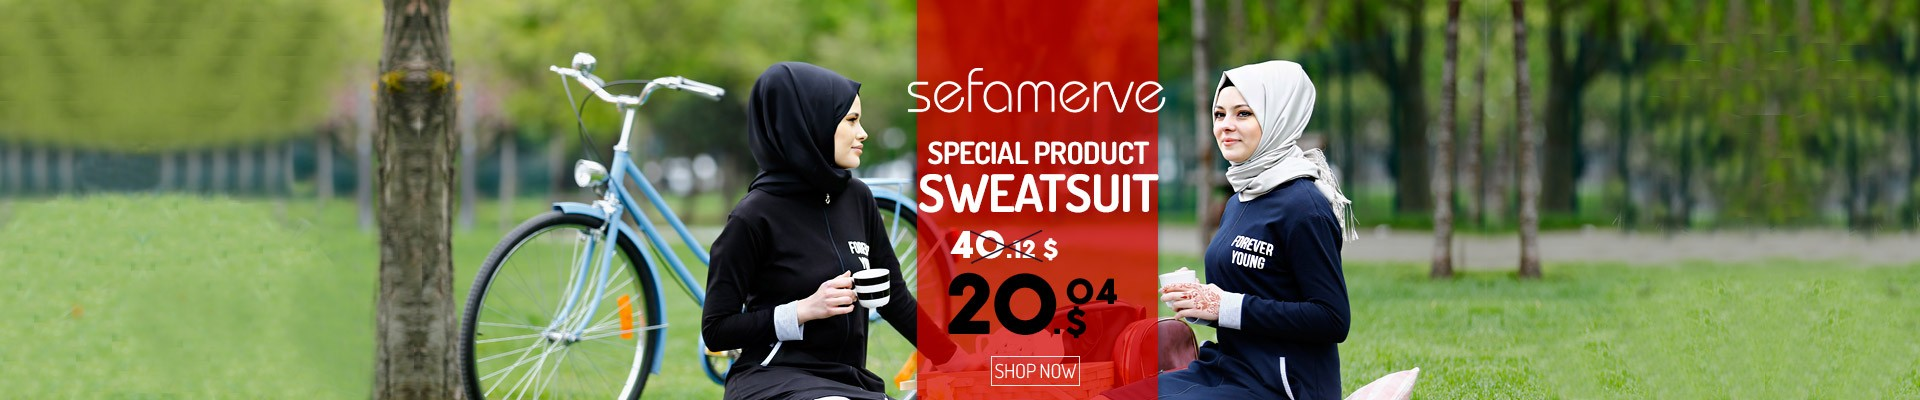 Special Product Sweatsuit